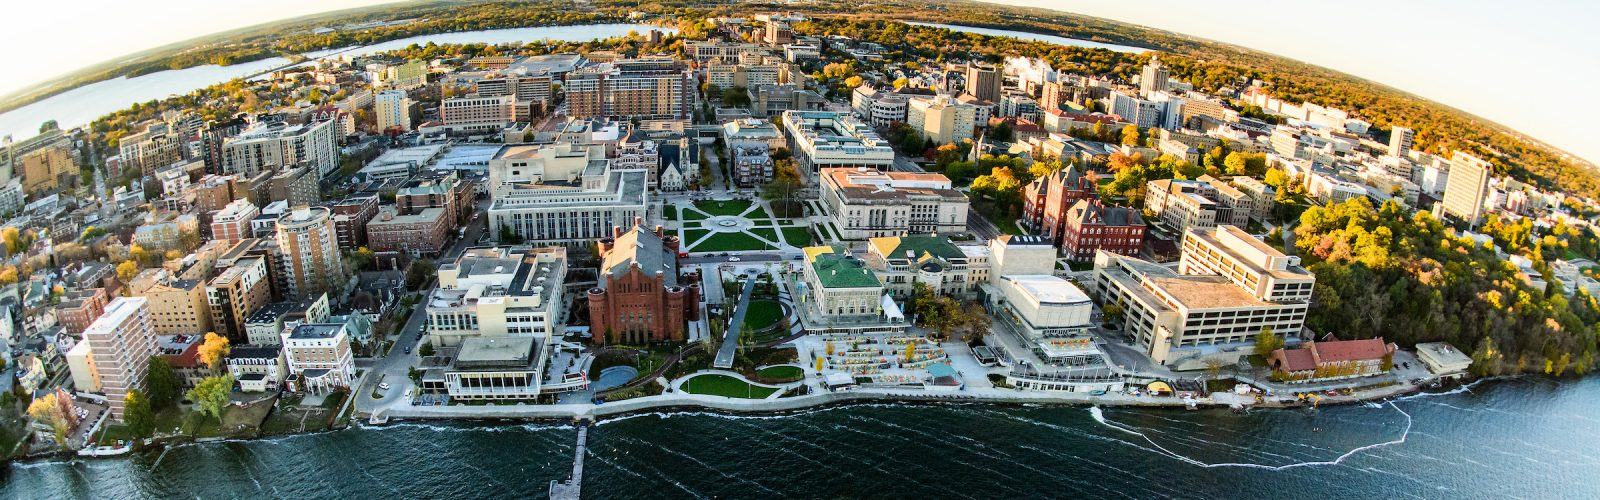 Aerial view of downtown part of the UW-Madison campus